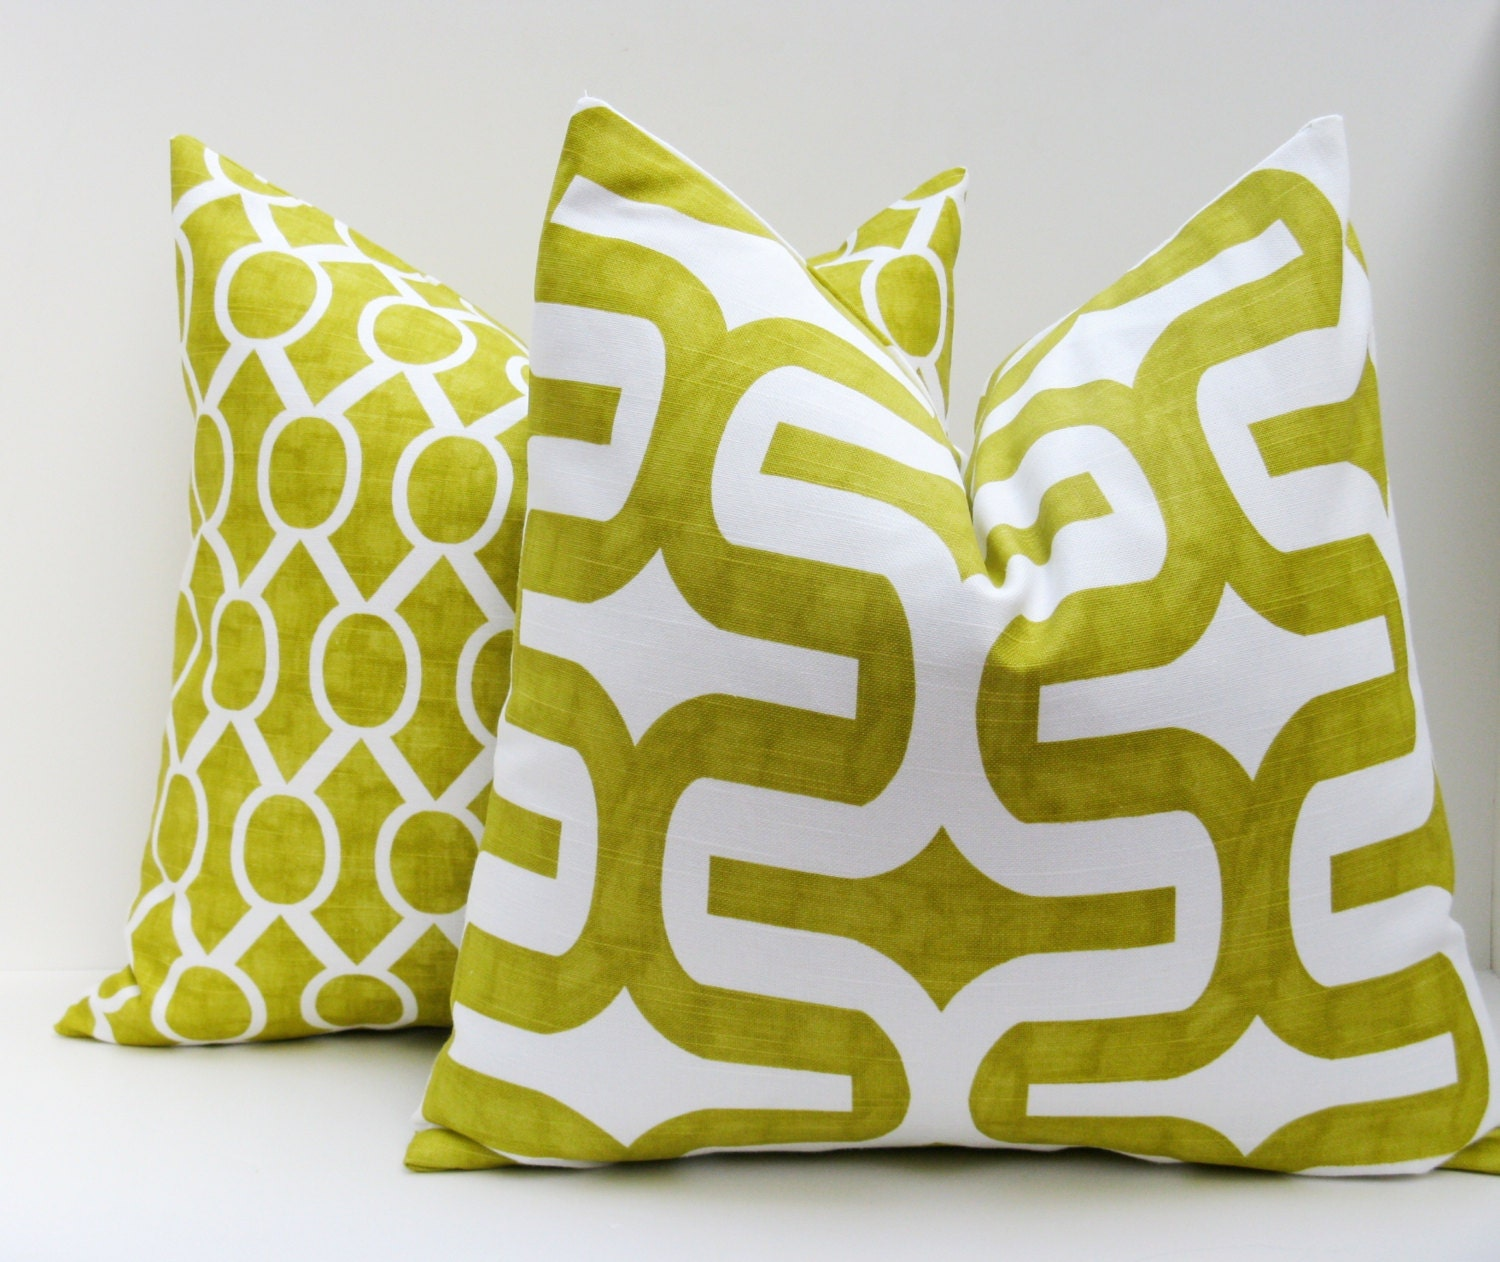 Large Square Decorative Pillow Covers : Throw Pillow Covers 20x20 Lime Green Pillow Covers by EastAndNest